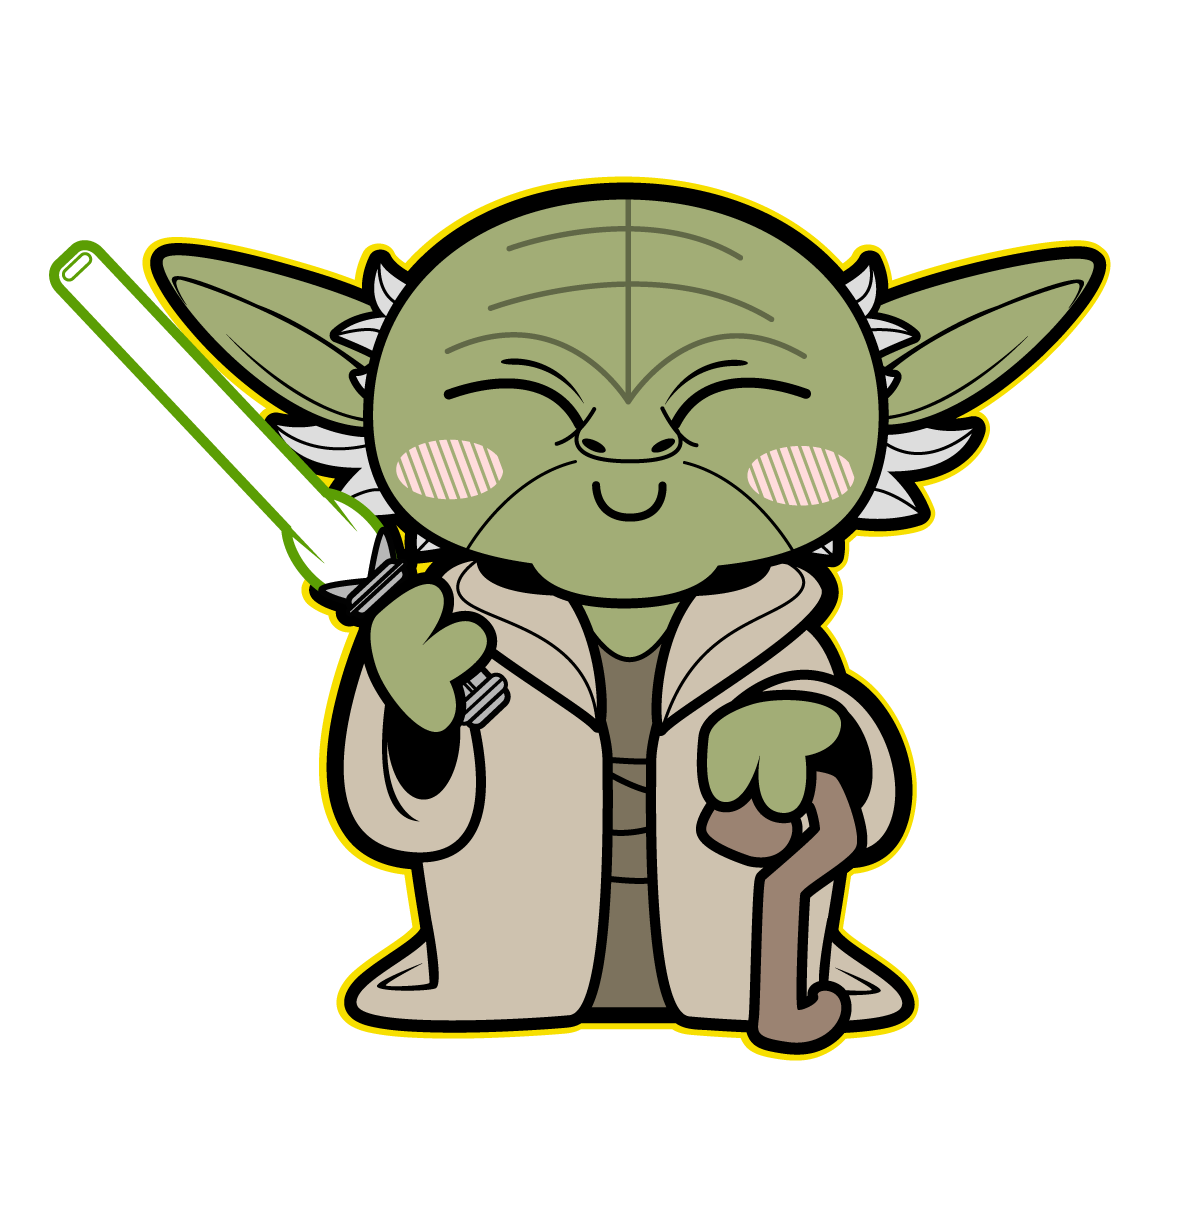 Tiefighters star wars pinterest. Starwars clipart yoda